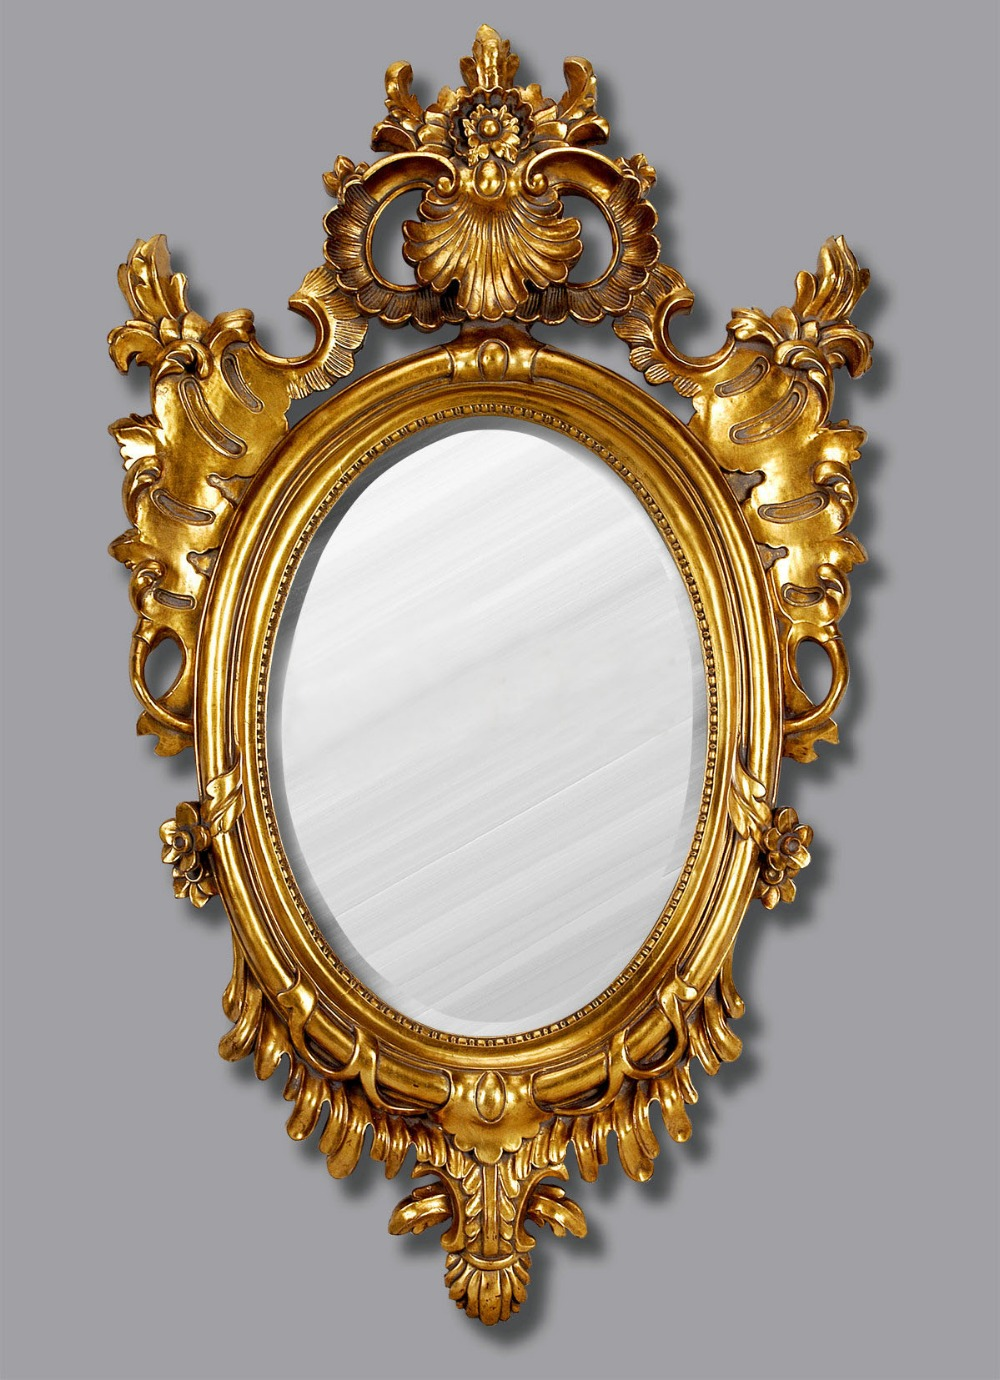 popular large oval mirror buy cheap large oval mirror lots